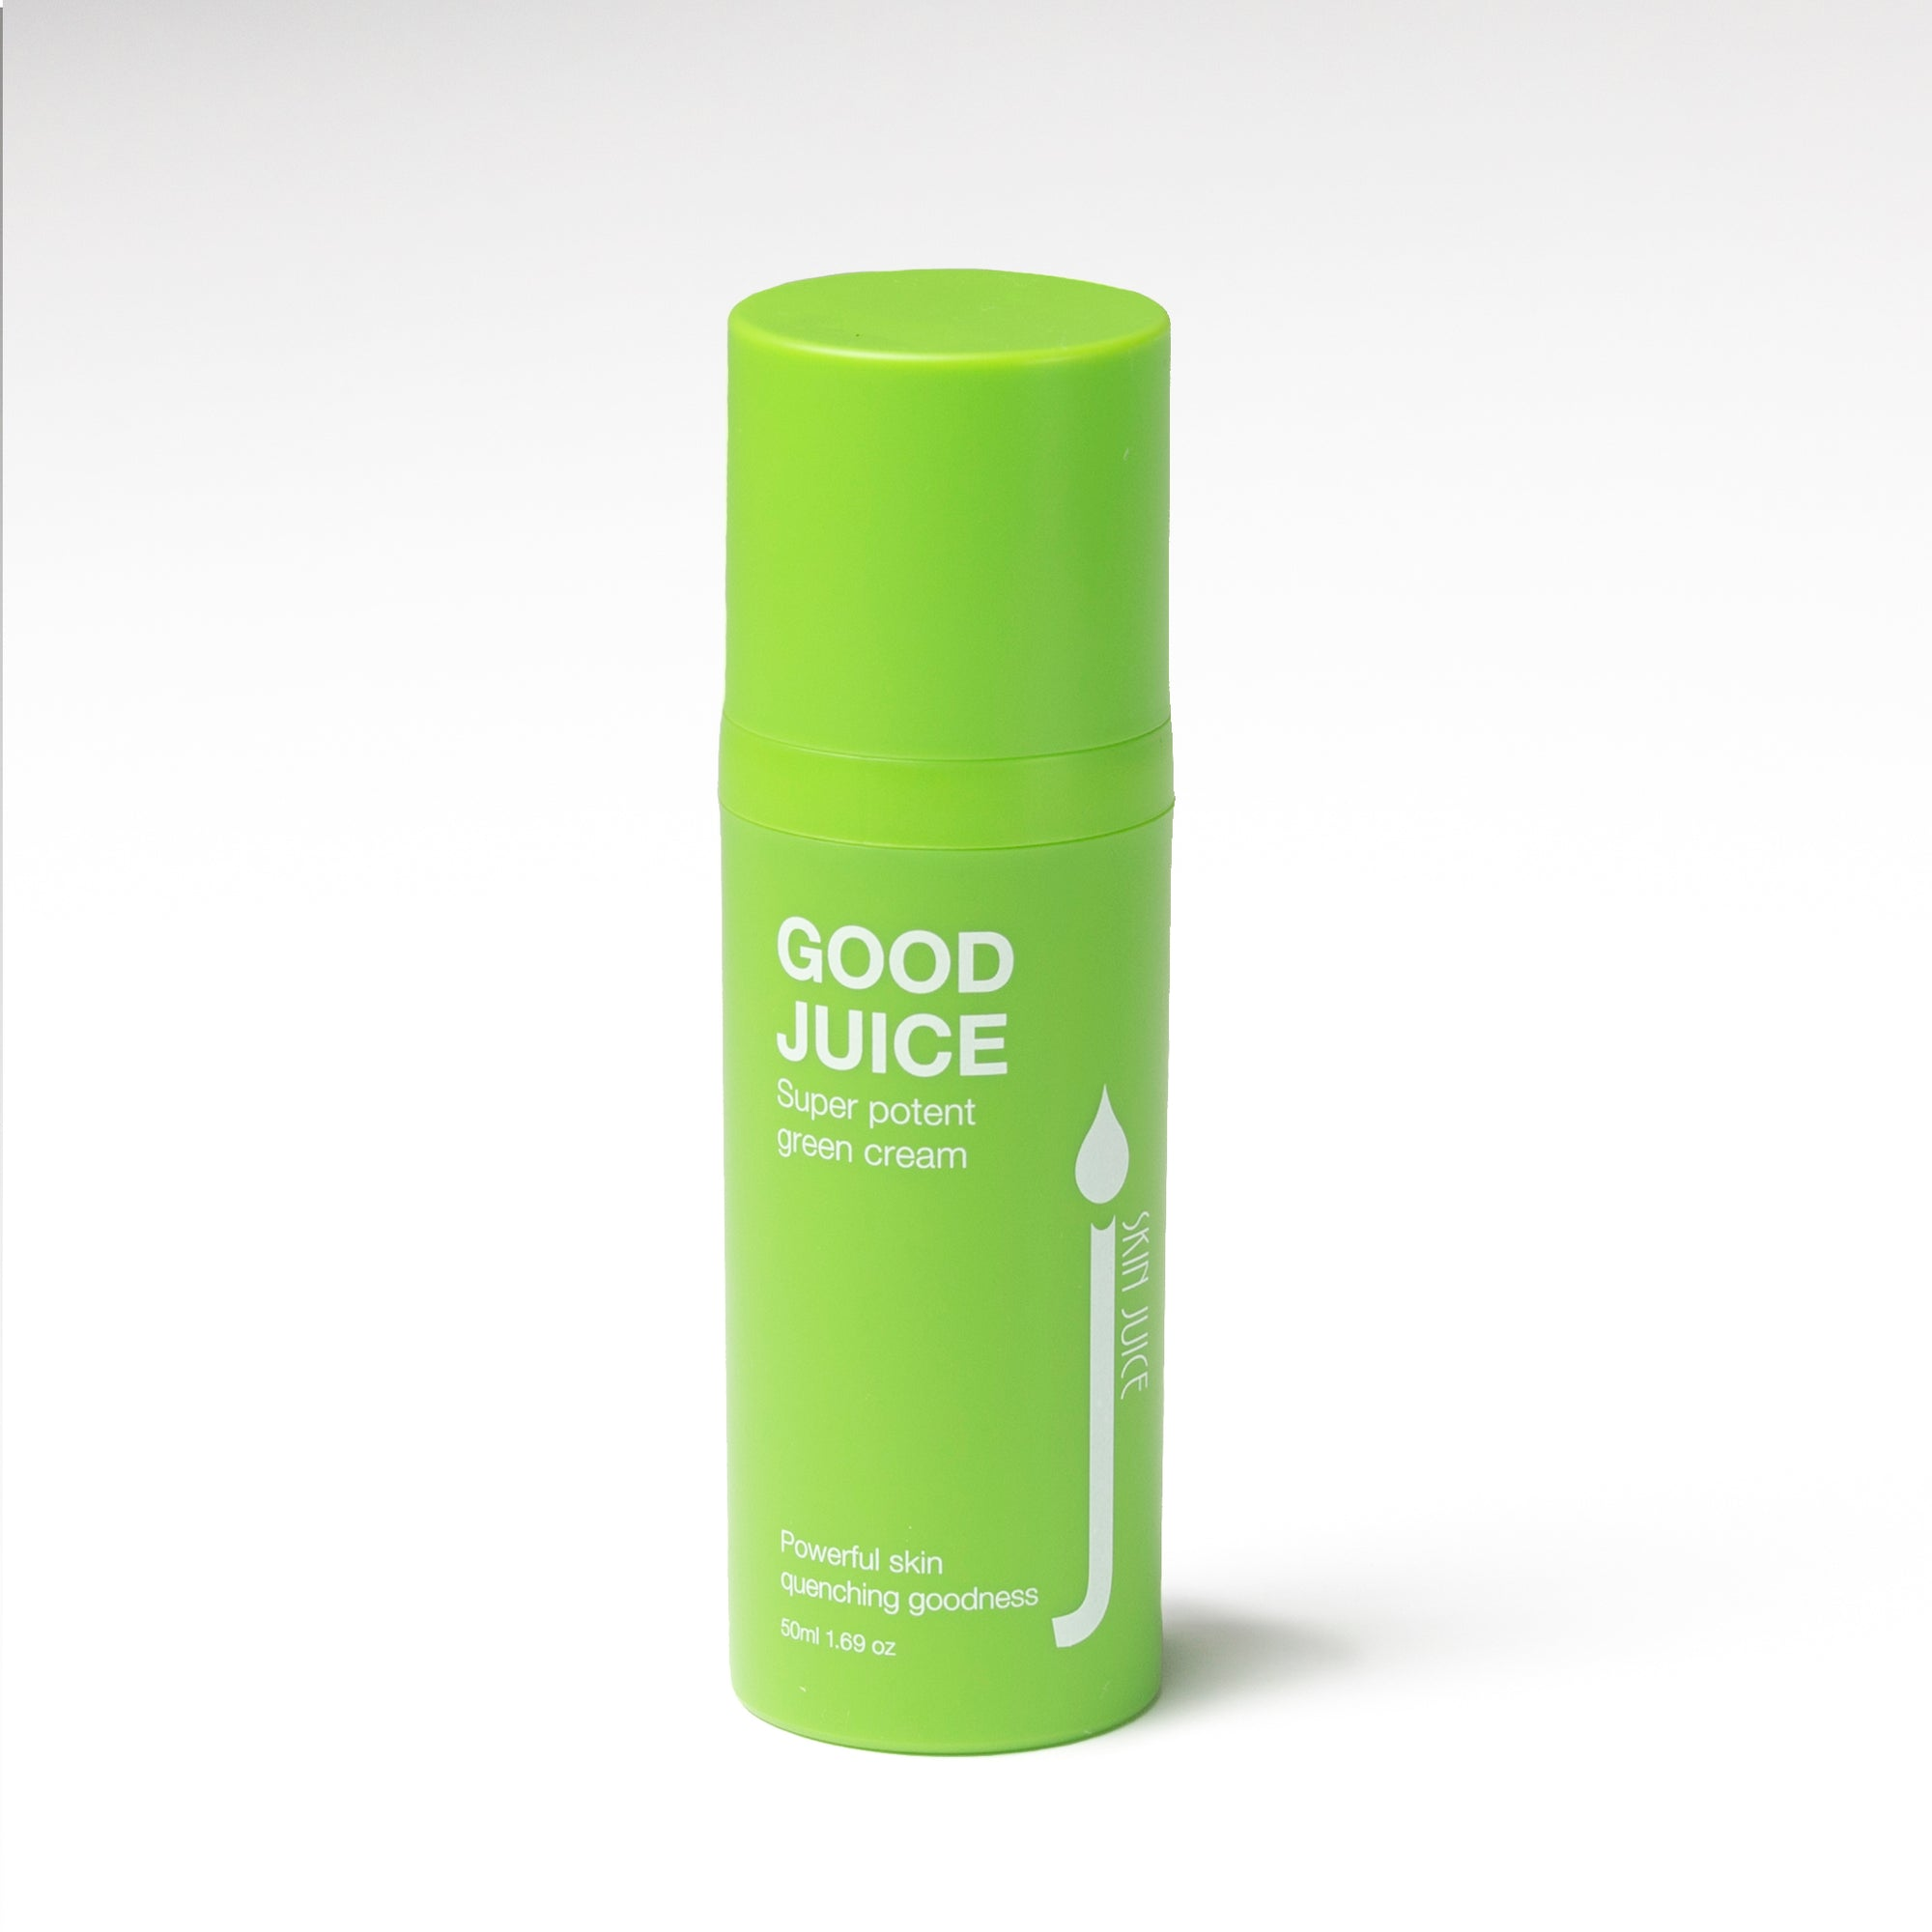 Good Juice is a mid-weight daily moisturiser that deeply hydrates and protects skin from free radical damage. Official Skin Juice stockist. Shop with Afterpay.